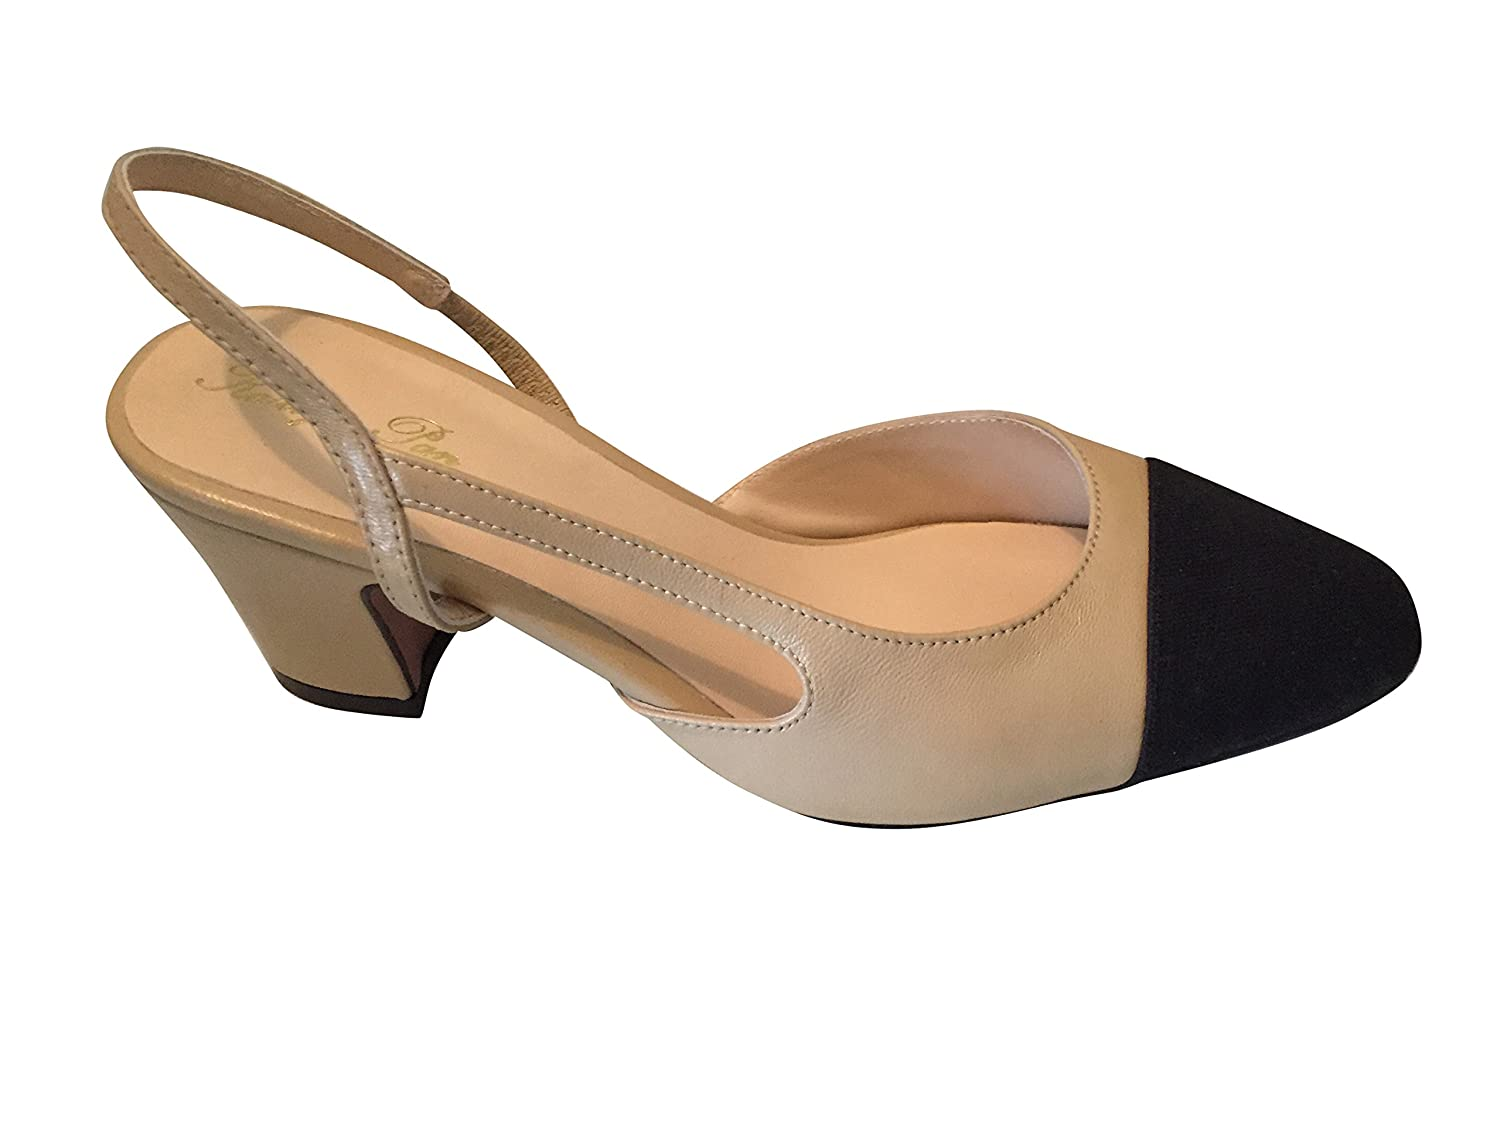 Kaitlyn Pan Genuine Leather Two Tone Block Heel Slingback Sandals B01DS41W0Q 10.5US/ 43CN|Beige and Black